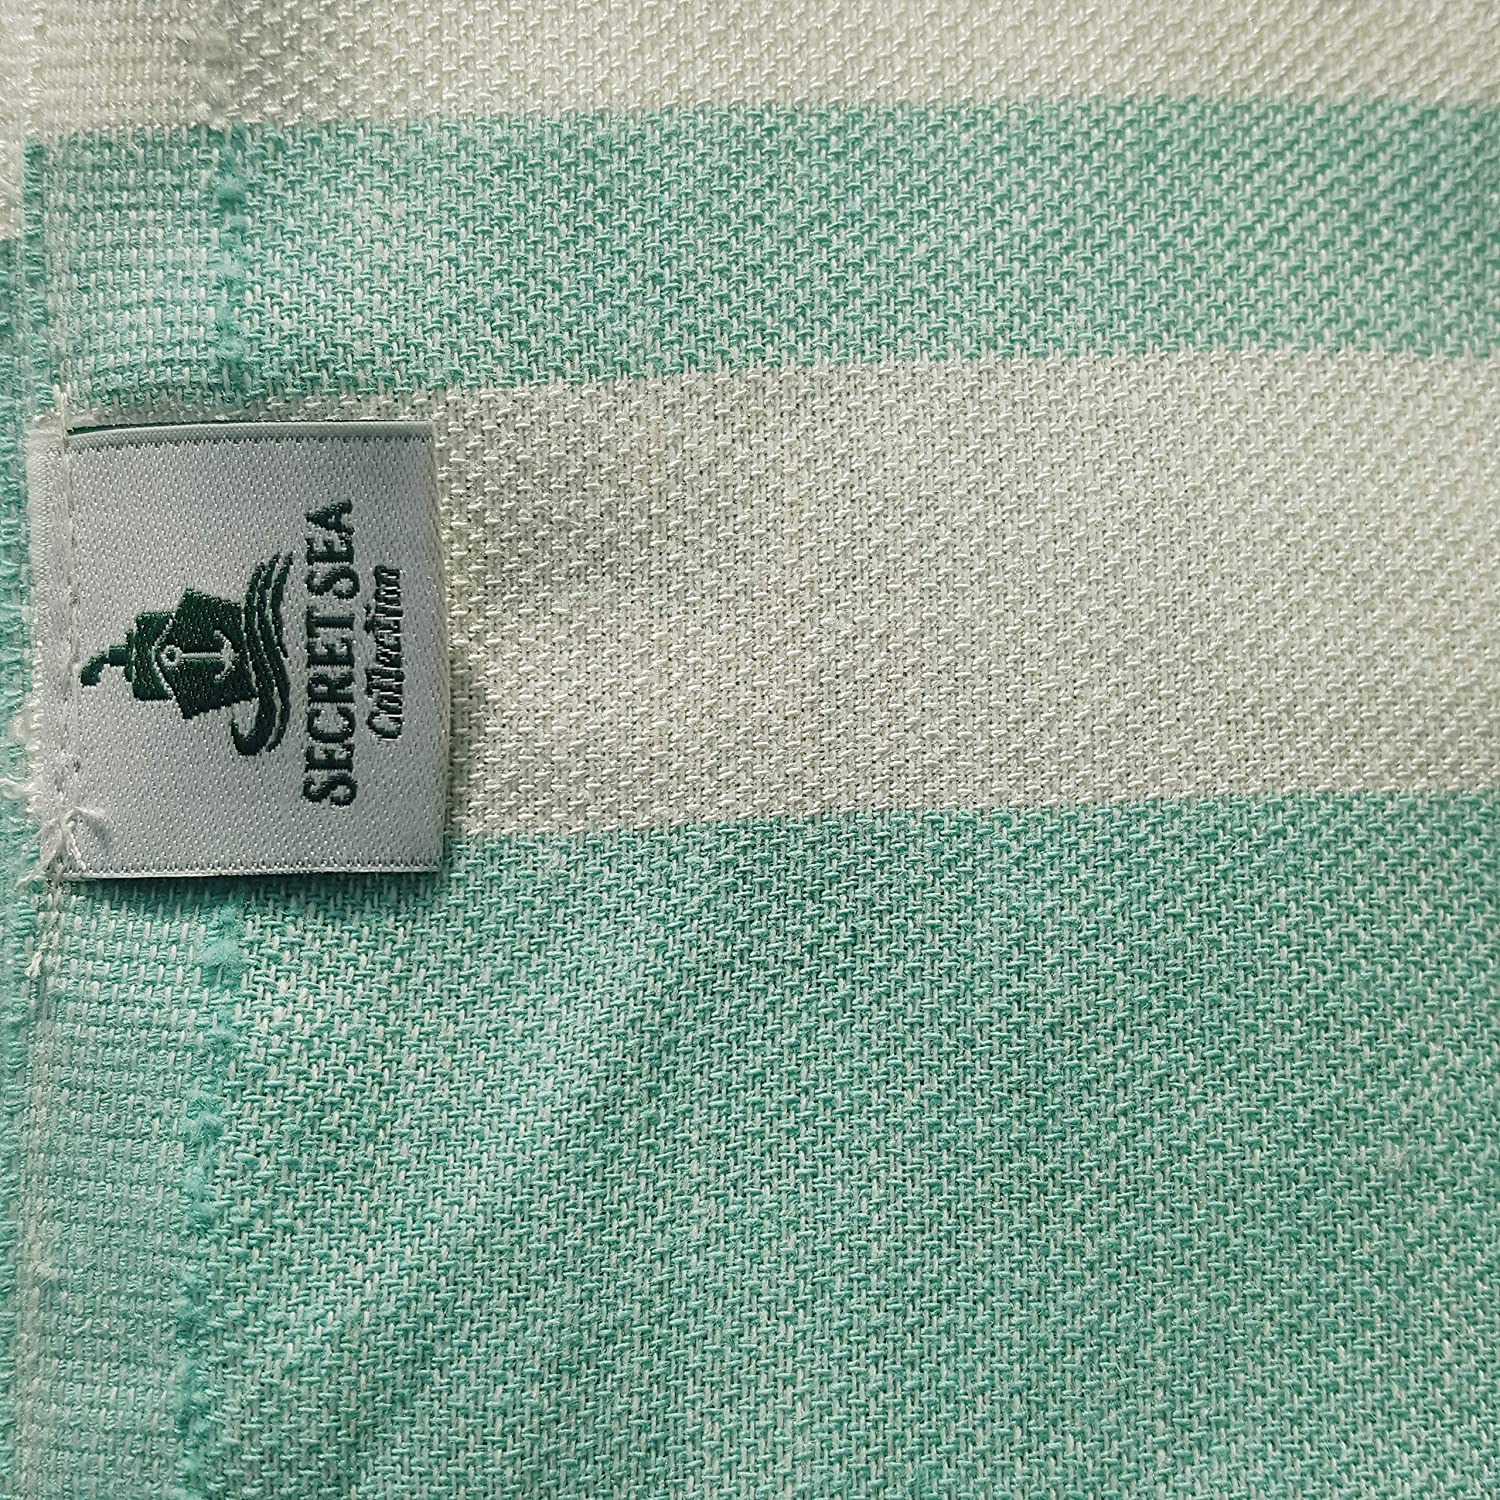 Perfect for Pool Yoga Secret Sea Collection 70 x 35 inches Spa Super Soft Fitness Bath Towel /& Peshtemal Gym Water Green Water Green Bamboo Beach Towel Babycare Travel 70/'/' x 35/'/' inches